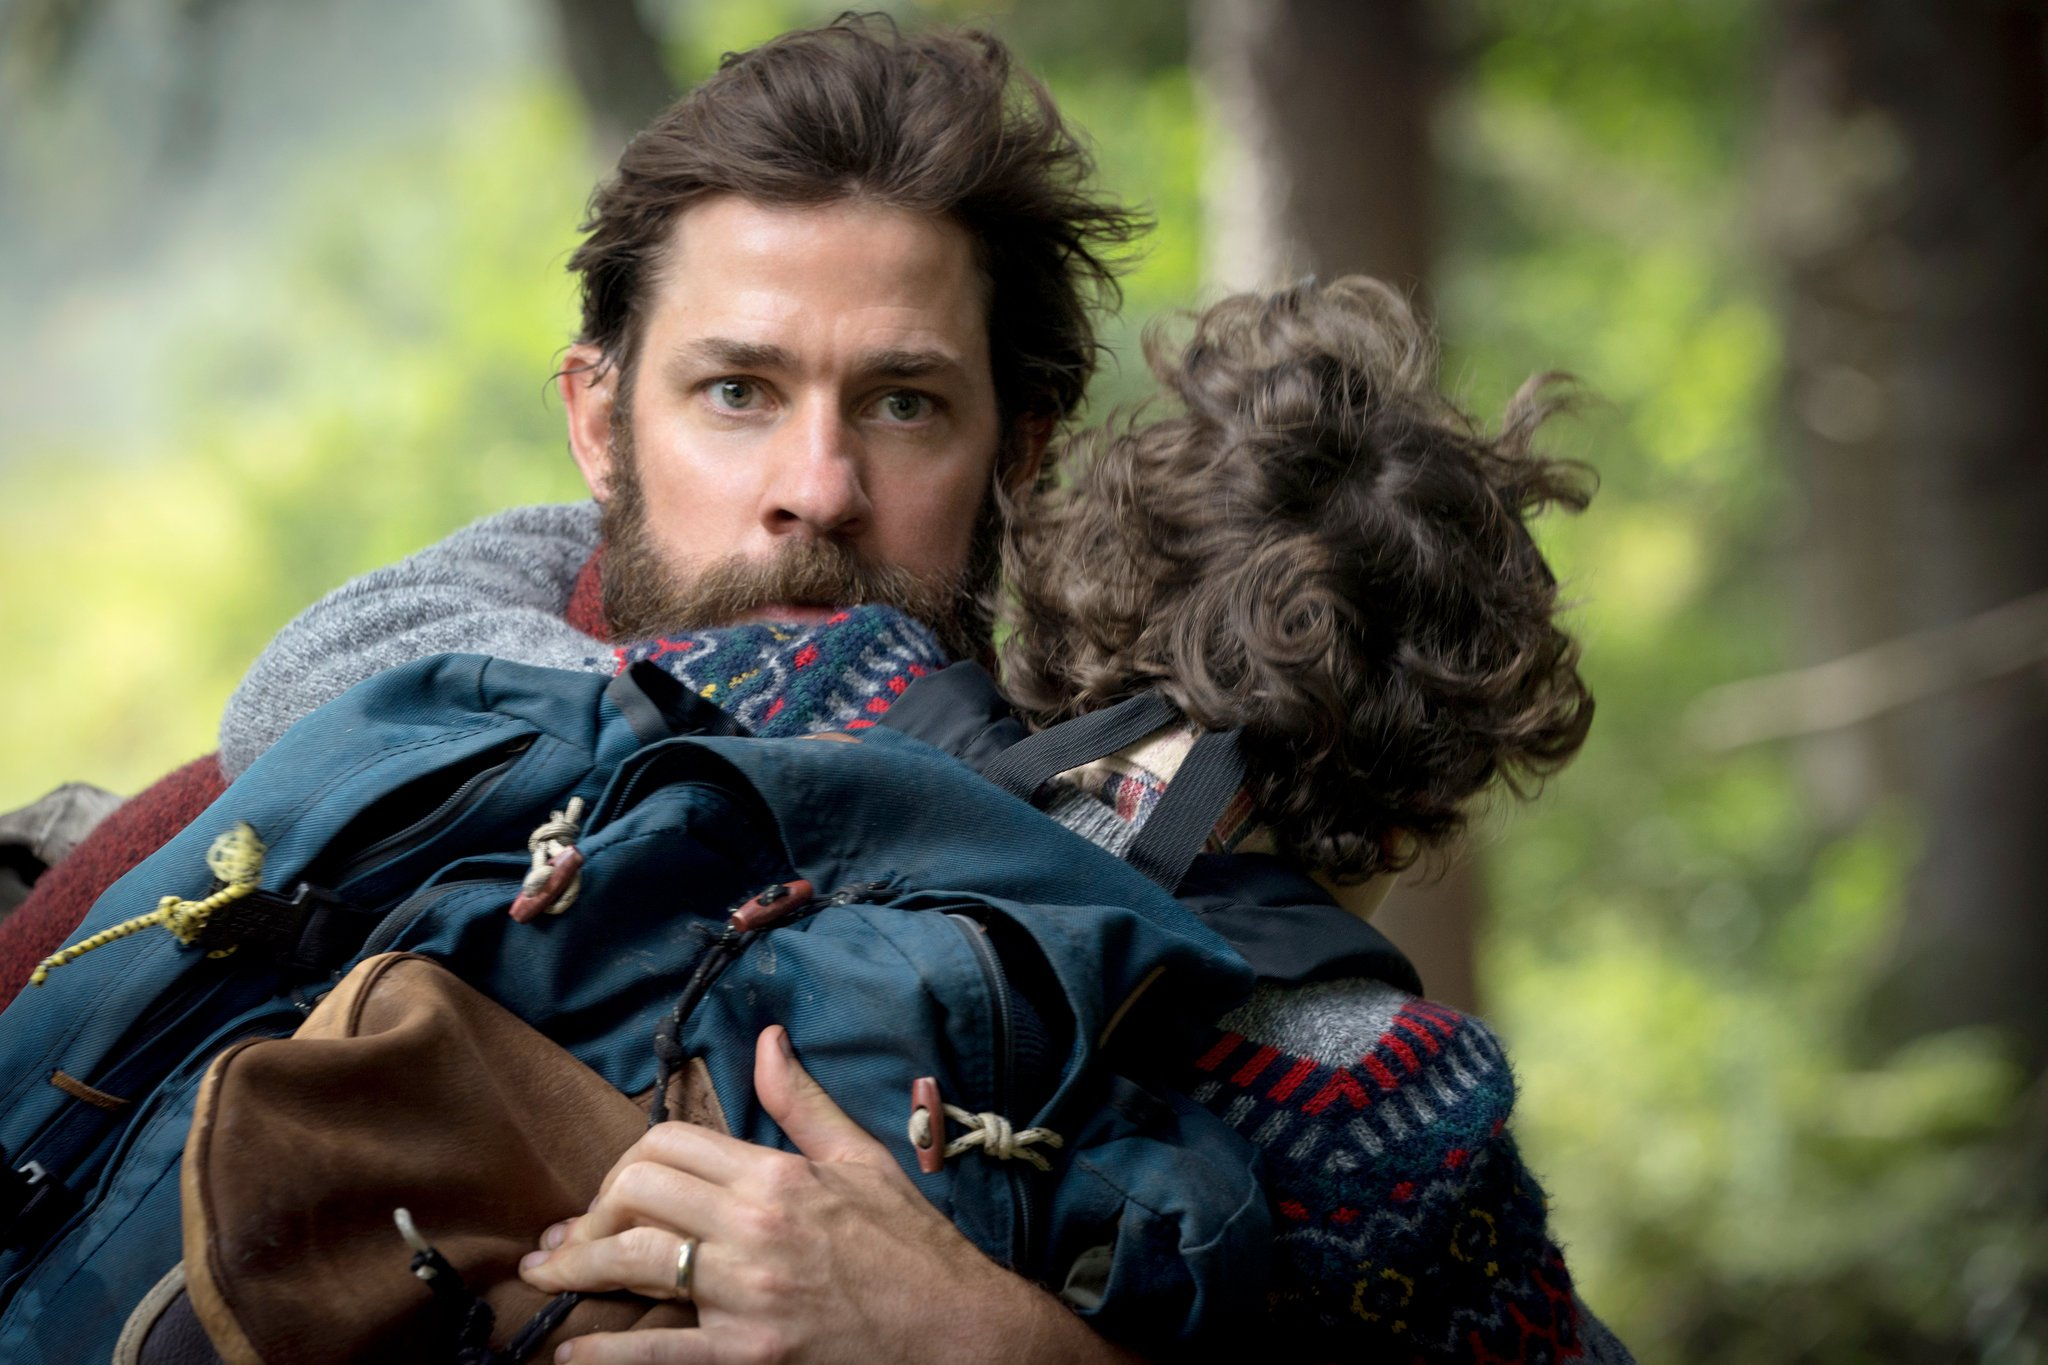 A Quiet Place, from Paramount Pictures